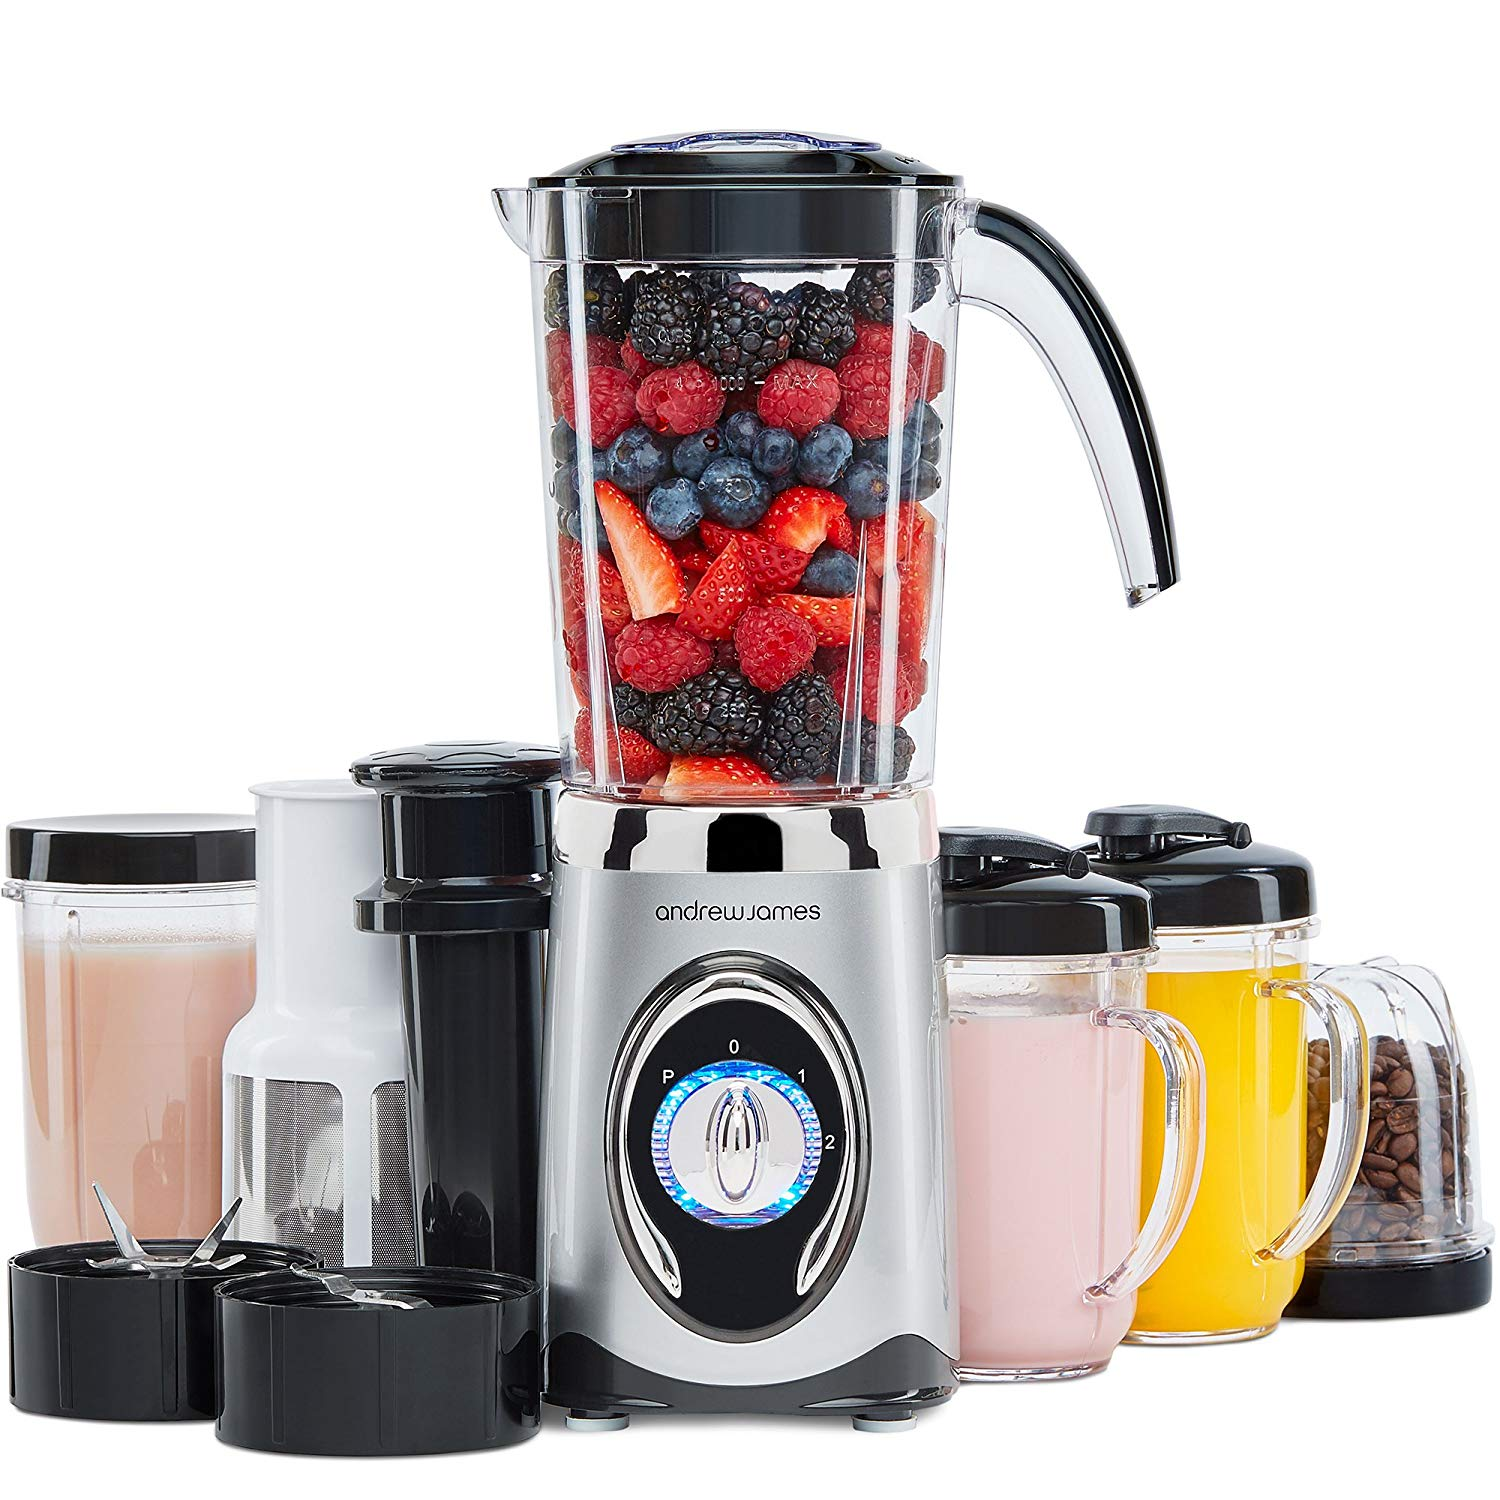 Andrew James Smoothie Maker | 4 in 1 Blender Machine with 1L Jug